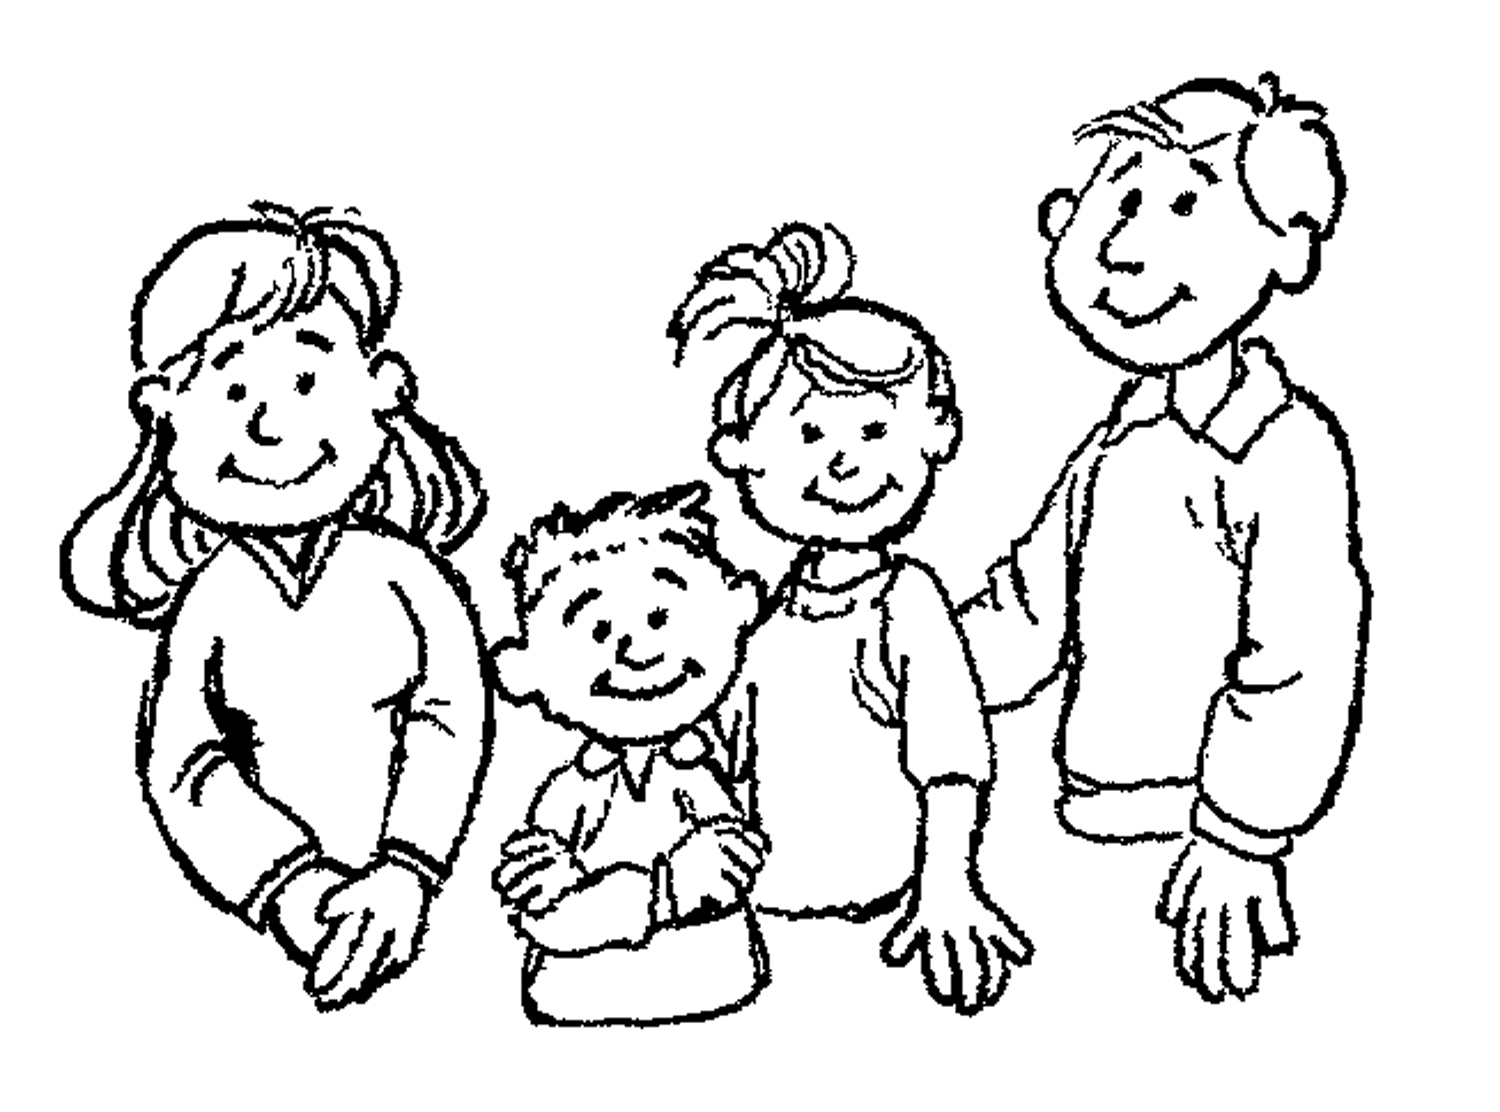 Family  black and white clipart black and white family clipart